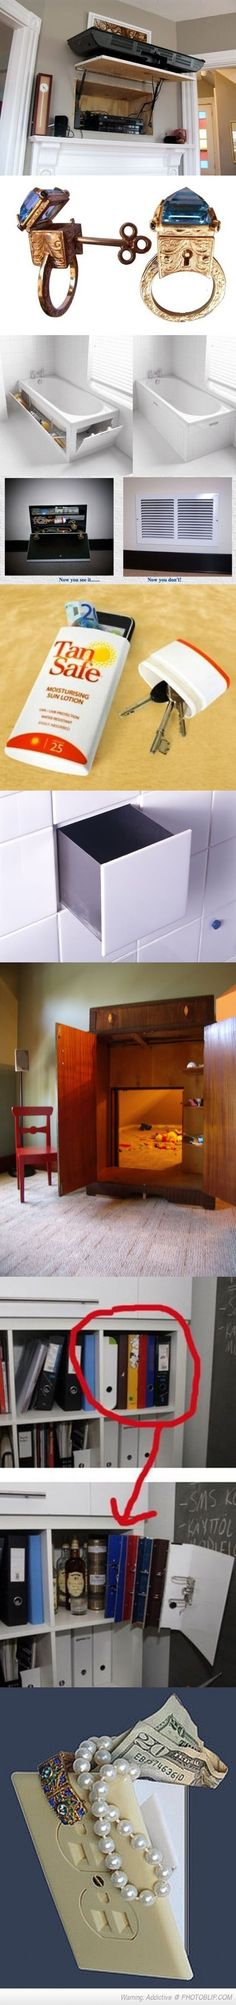 Awesome hiding places!